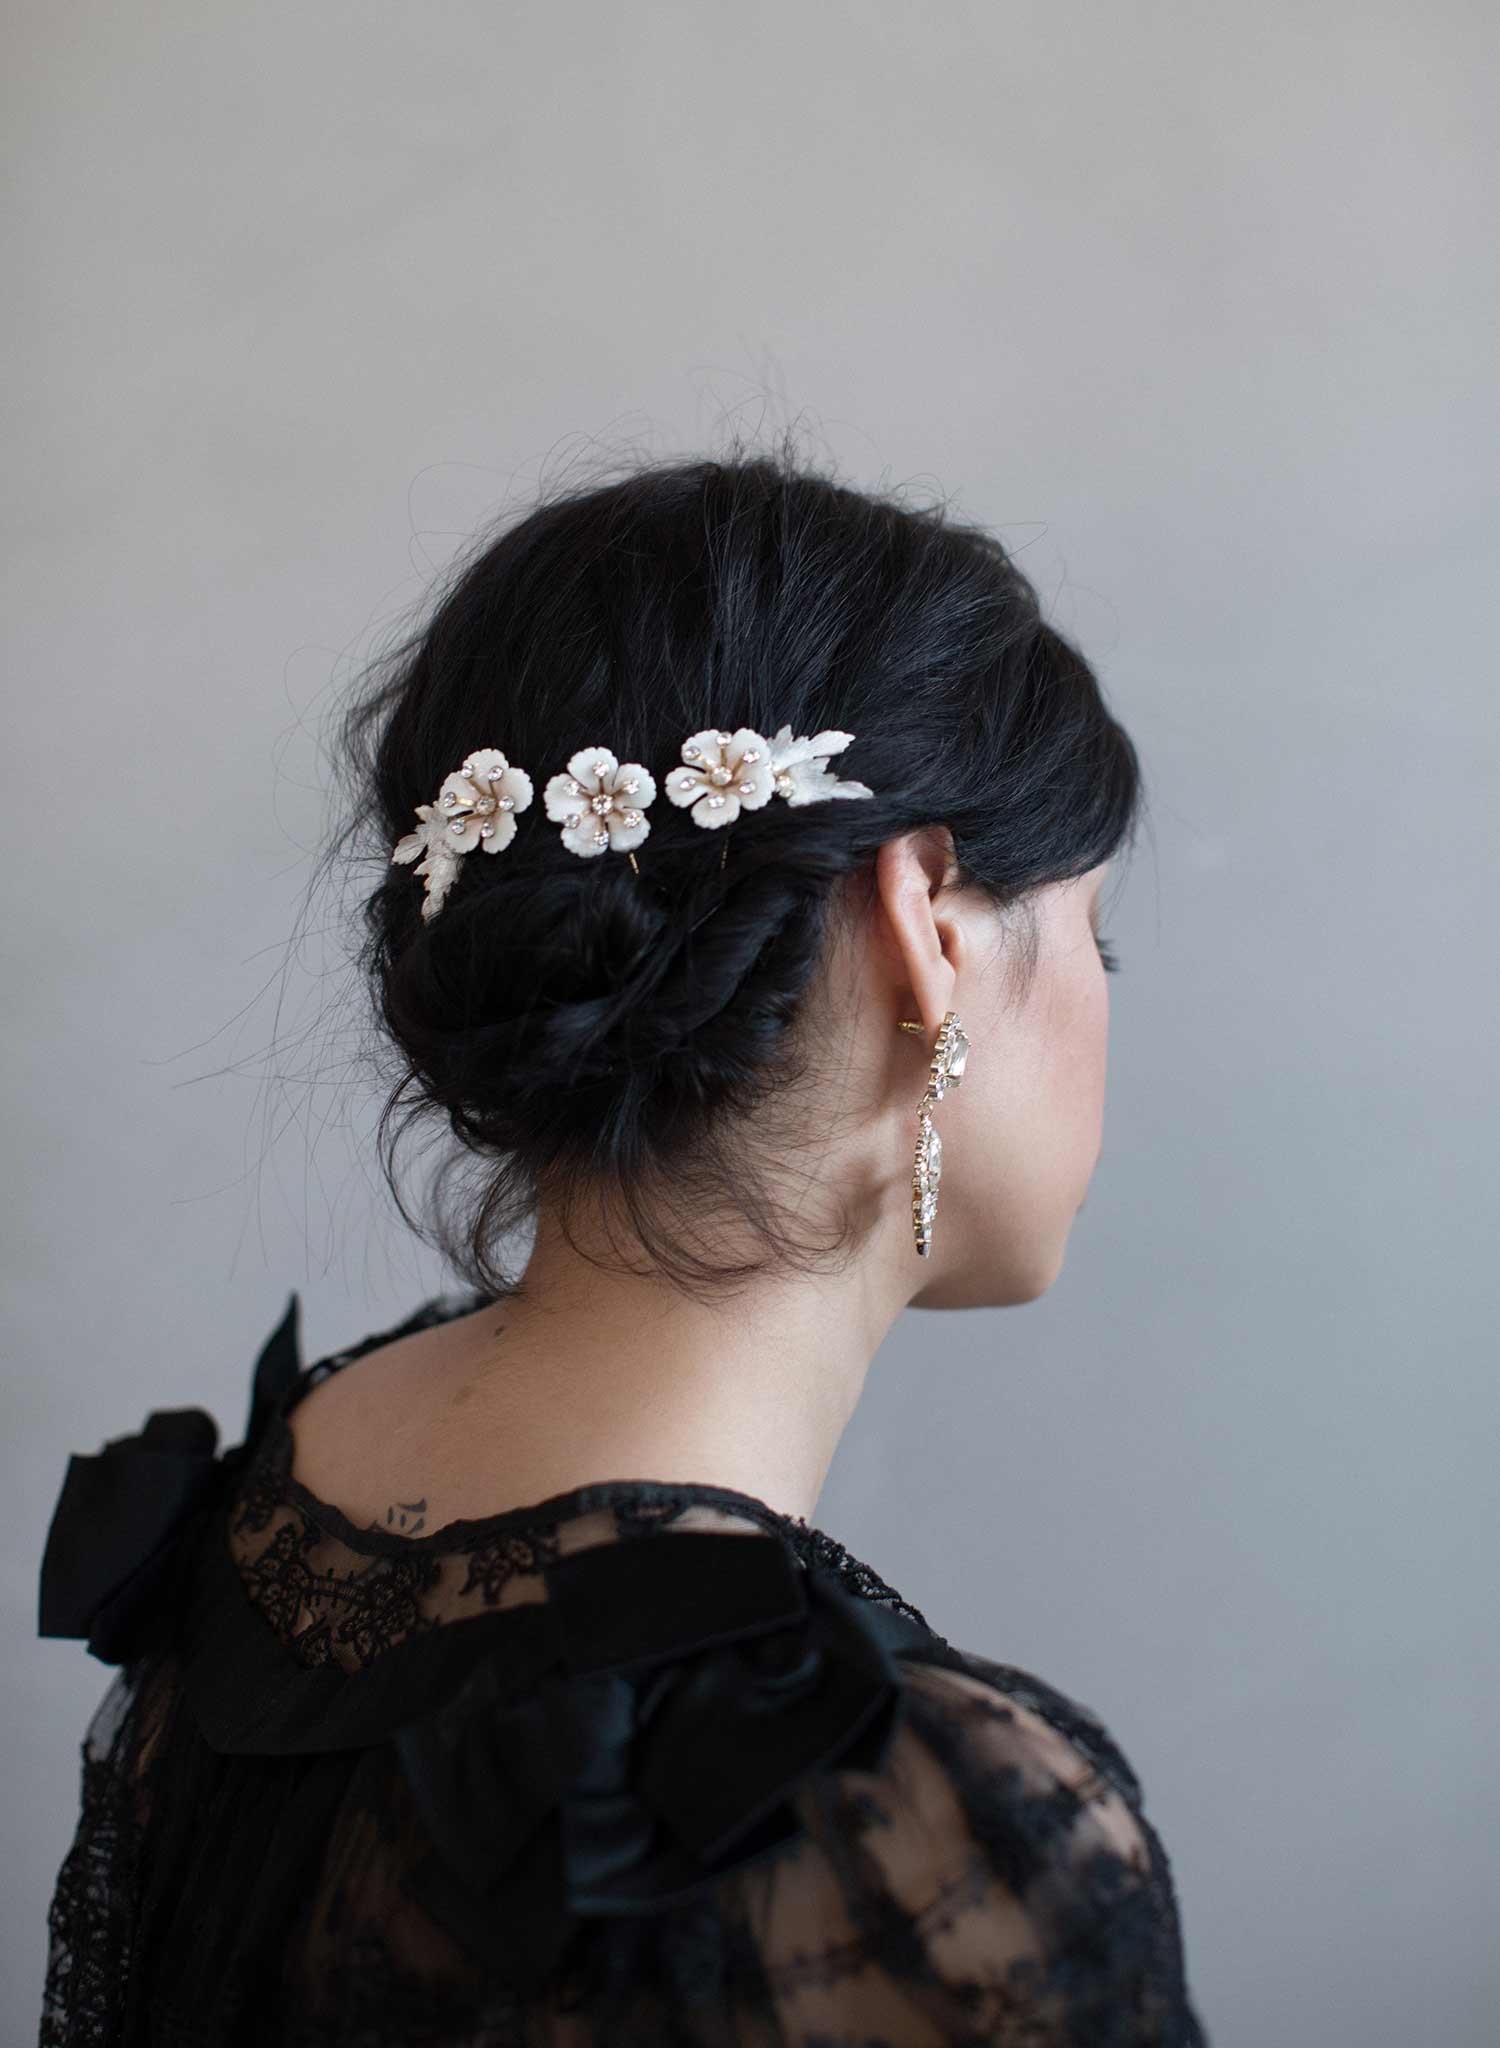 Sugar blossom hair pins set of 3 - Style #822